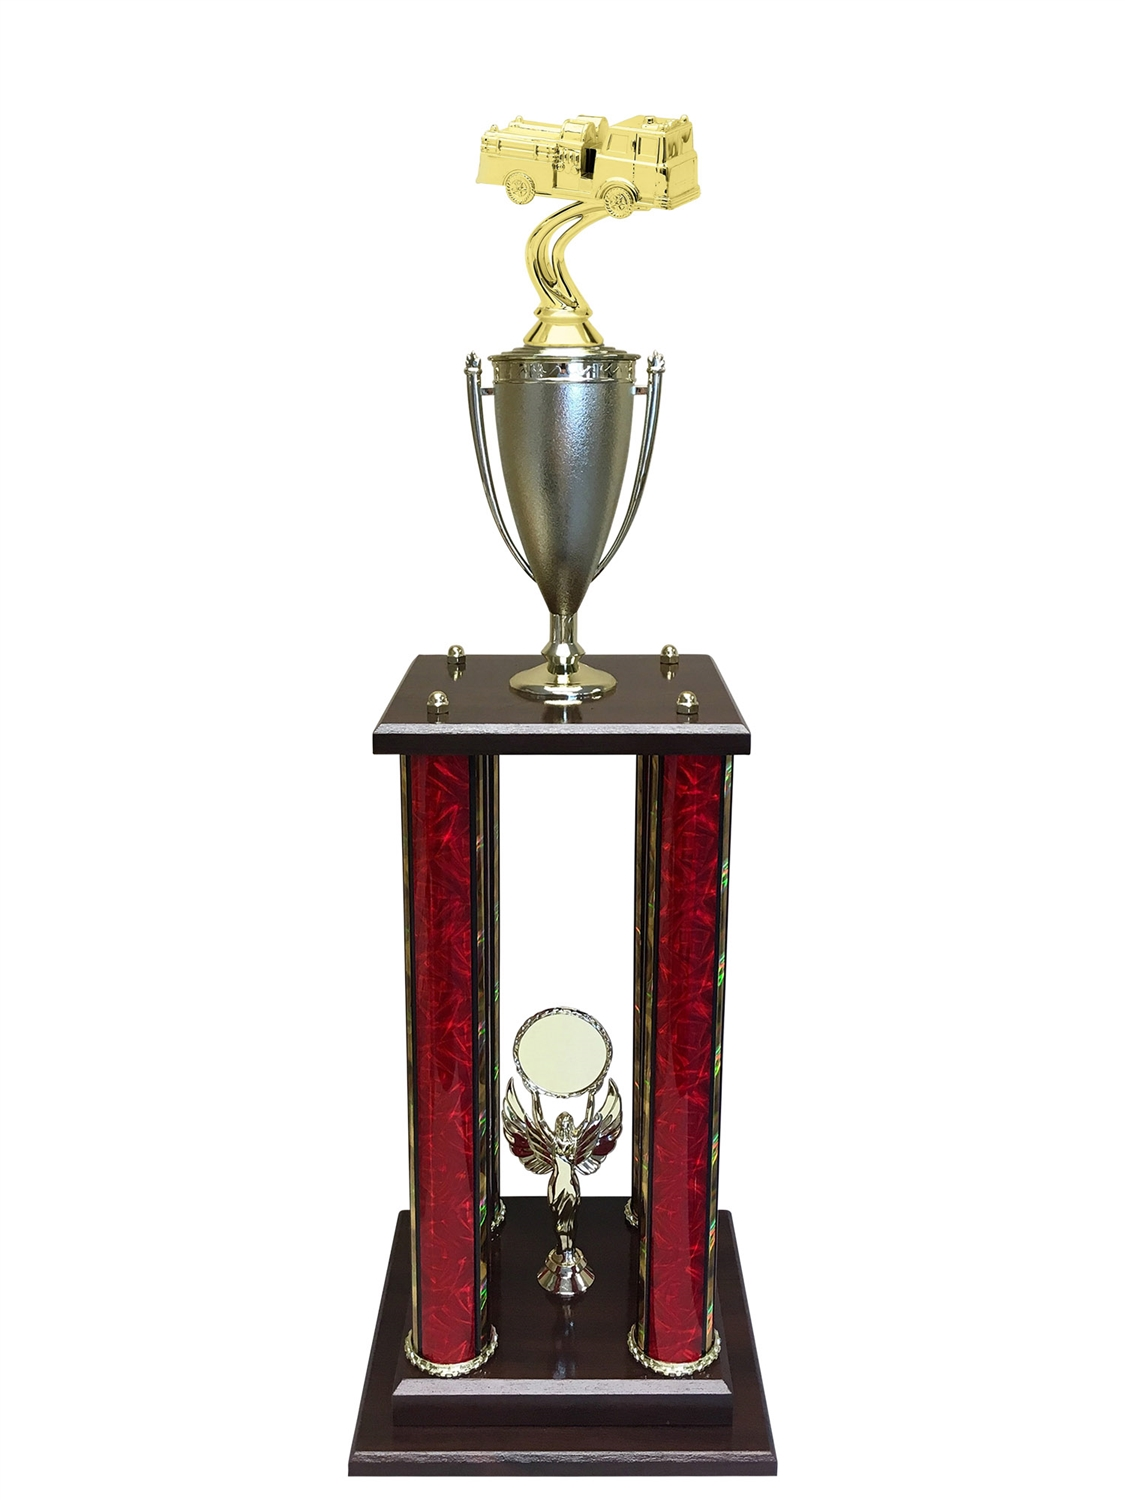 Firetruck Trophy Available in 11 colors & 3 sizes